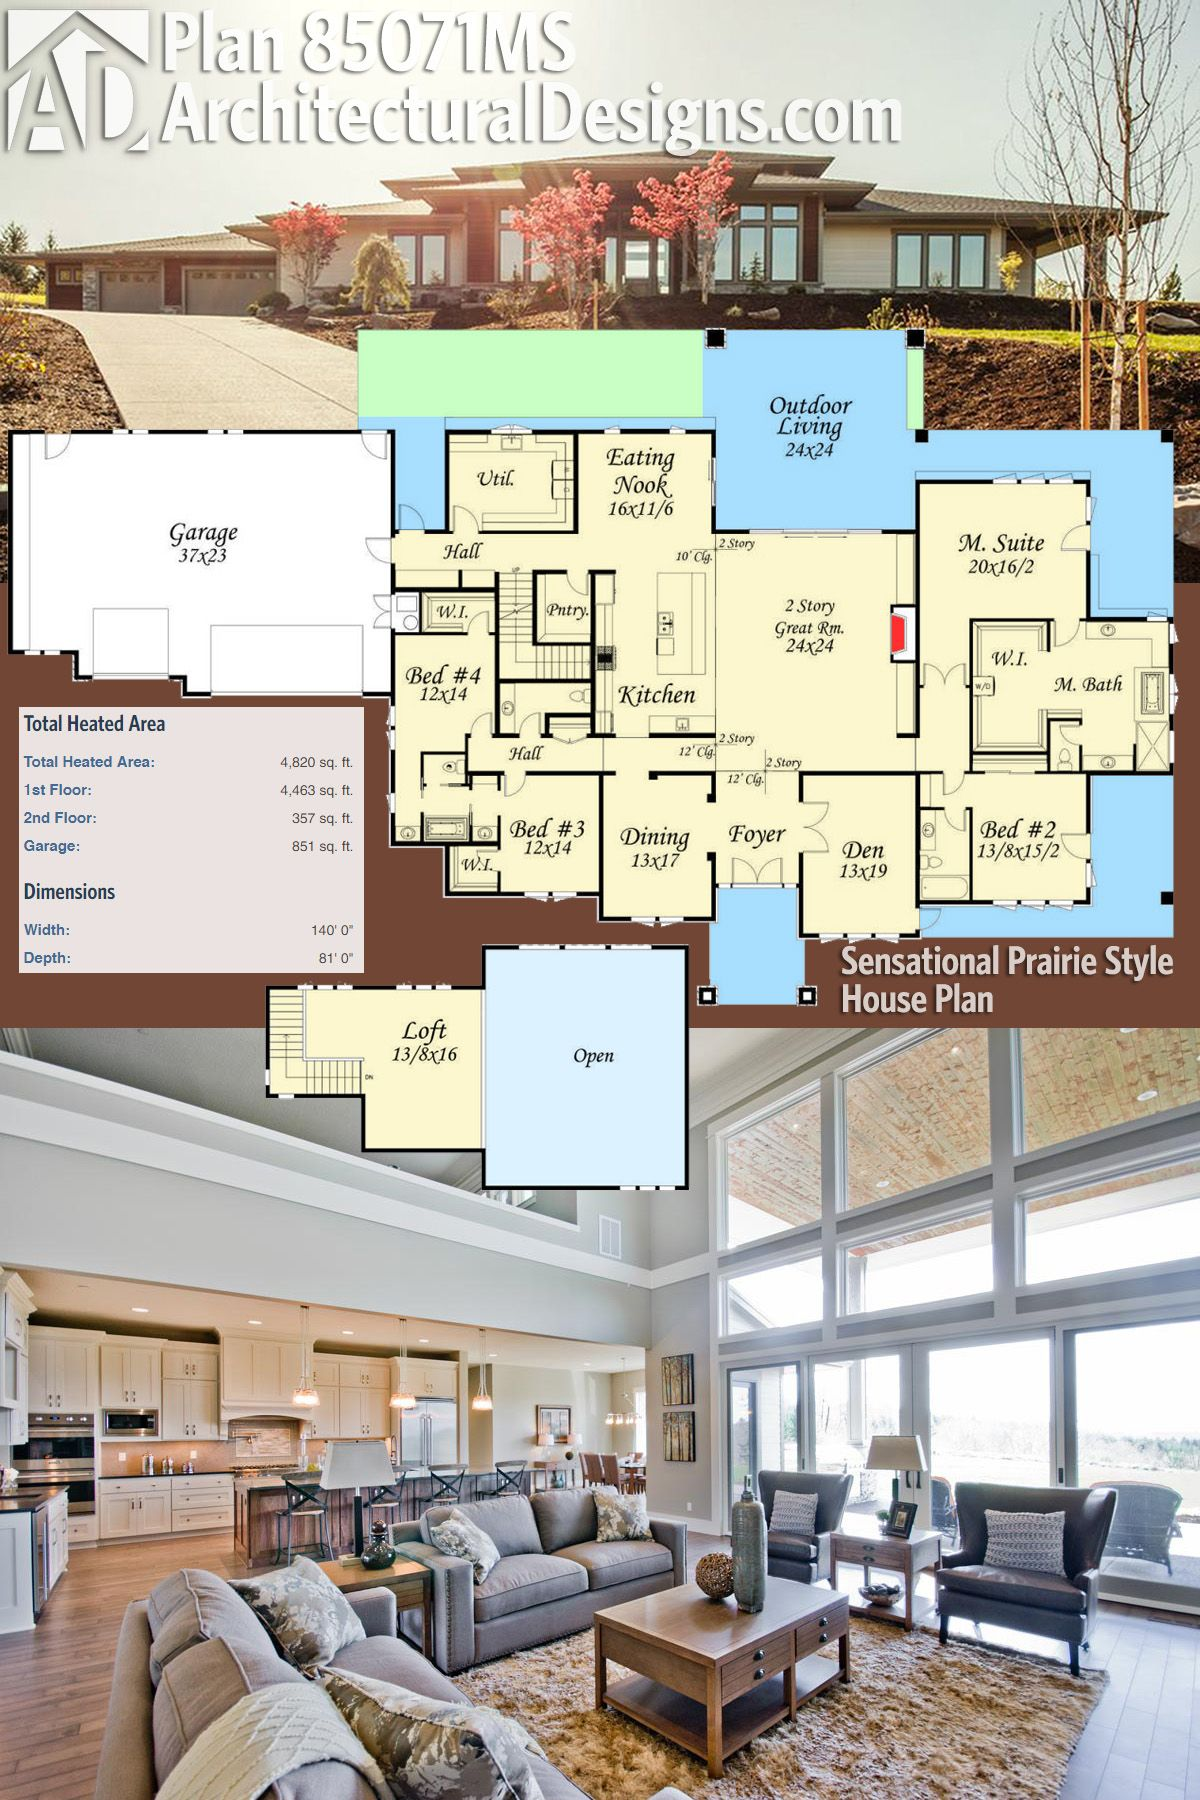 Architectural designs prairie style house plan ms gives you beds and over square feet of heated living space  story great room is the main also sensational floor plans rh pinterest